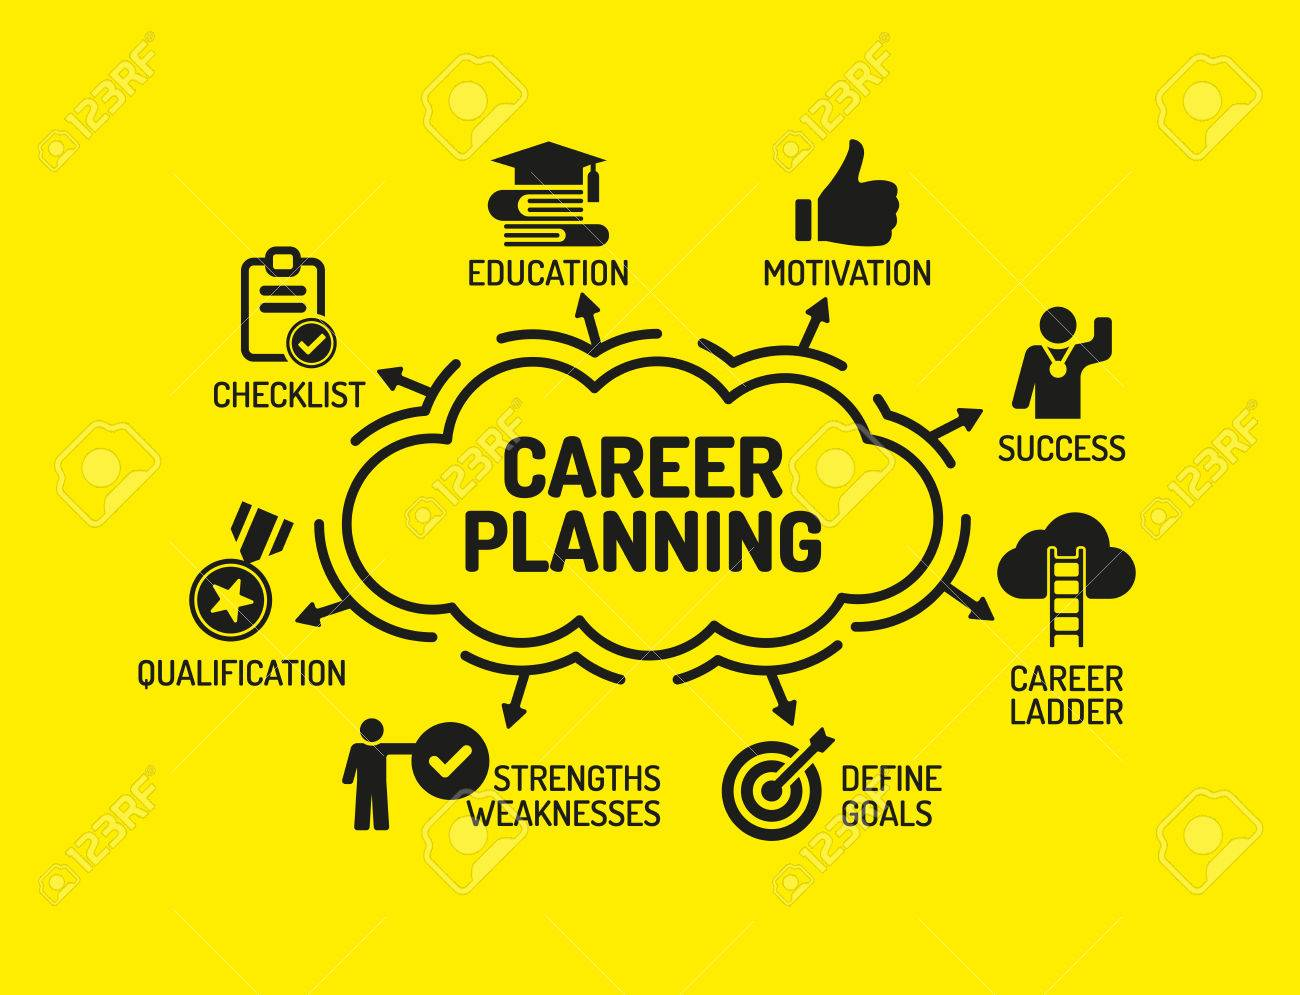 career planning chart keywords and icons on yellow career planning chart keywords and icons on yellow background stock vector 57571840